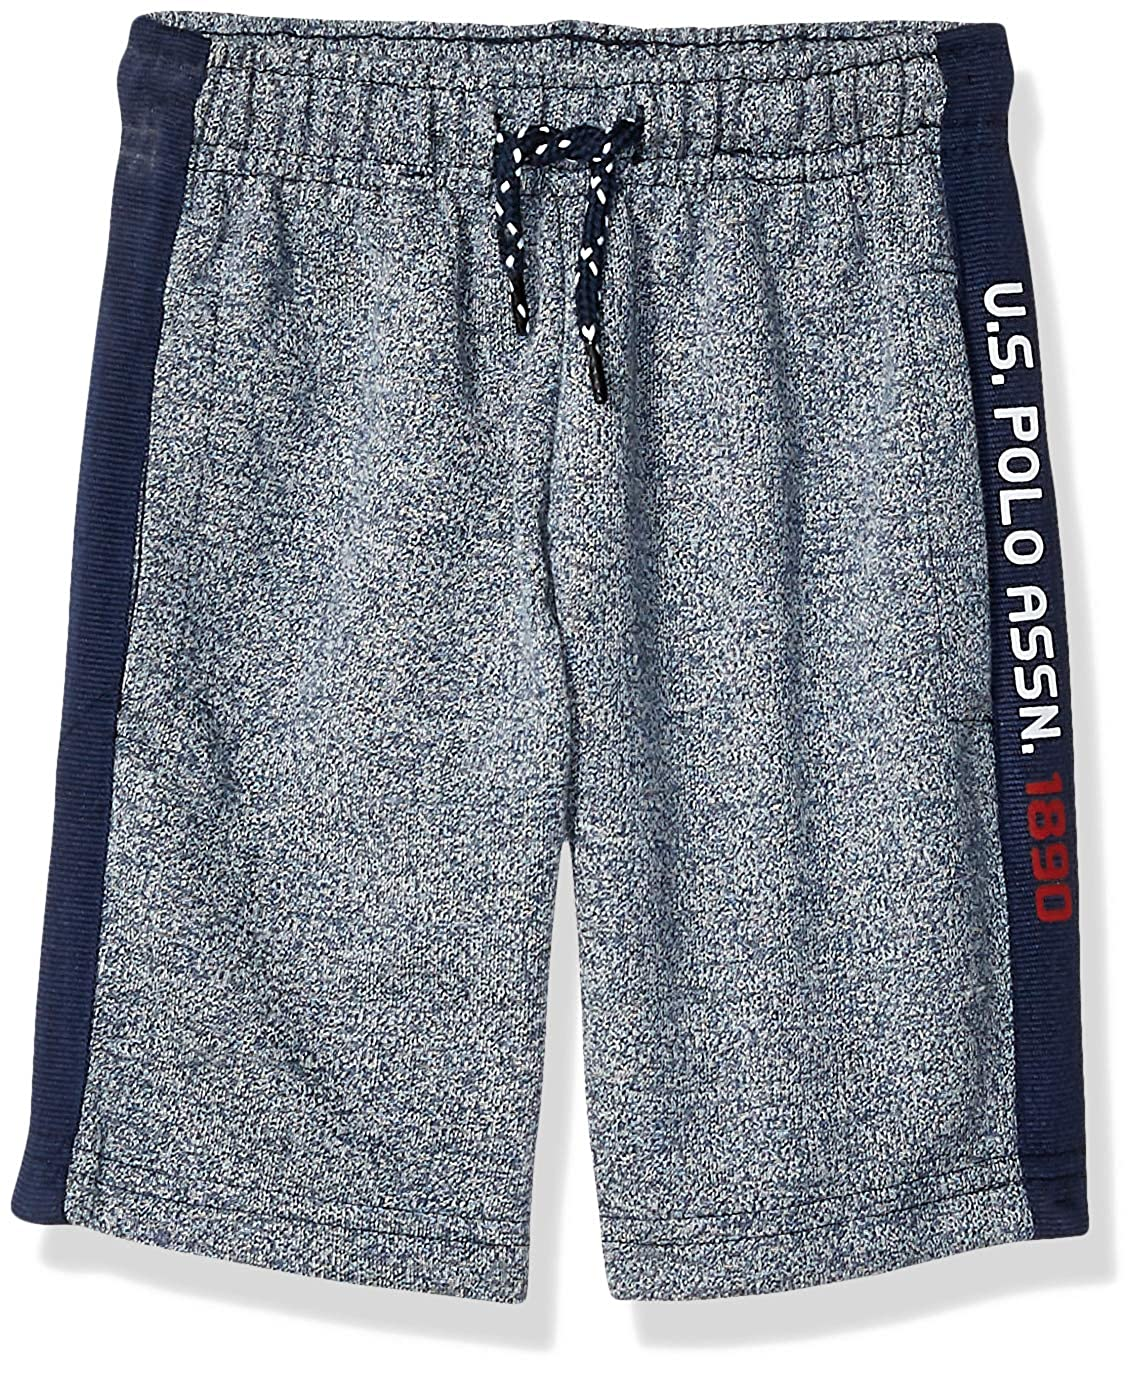 U.S Boys French Terry Short Polo Assn